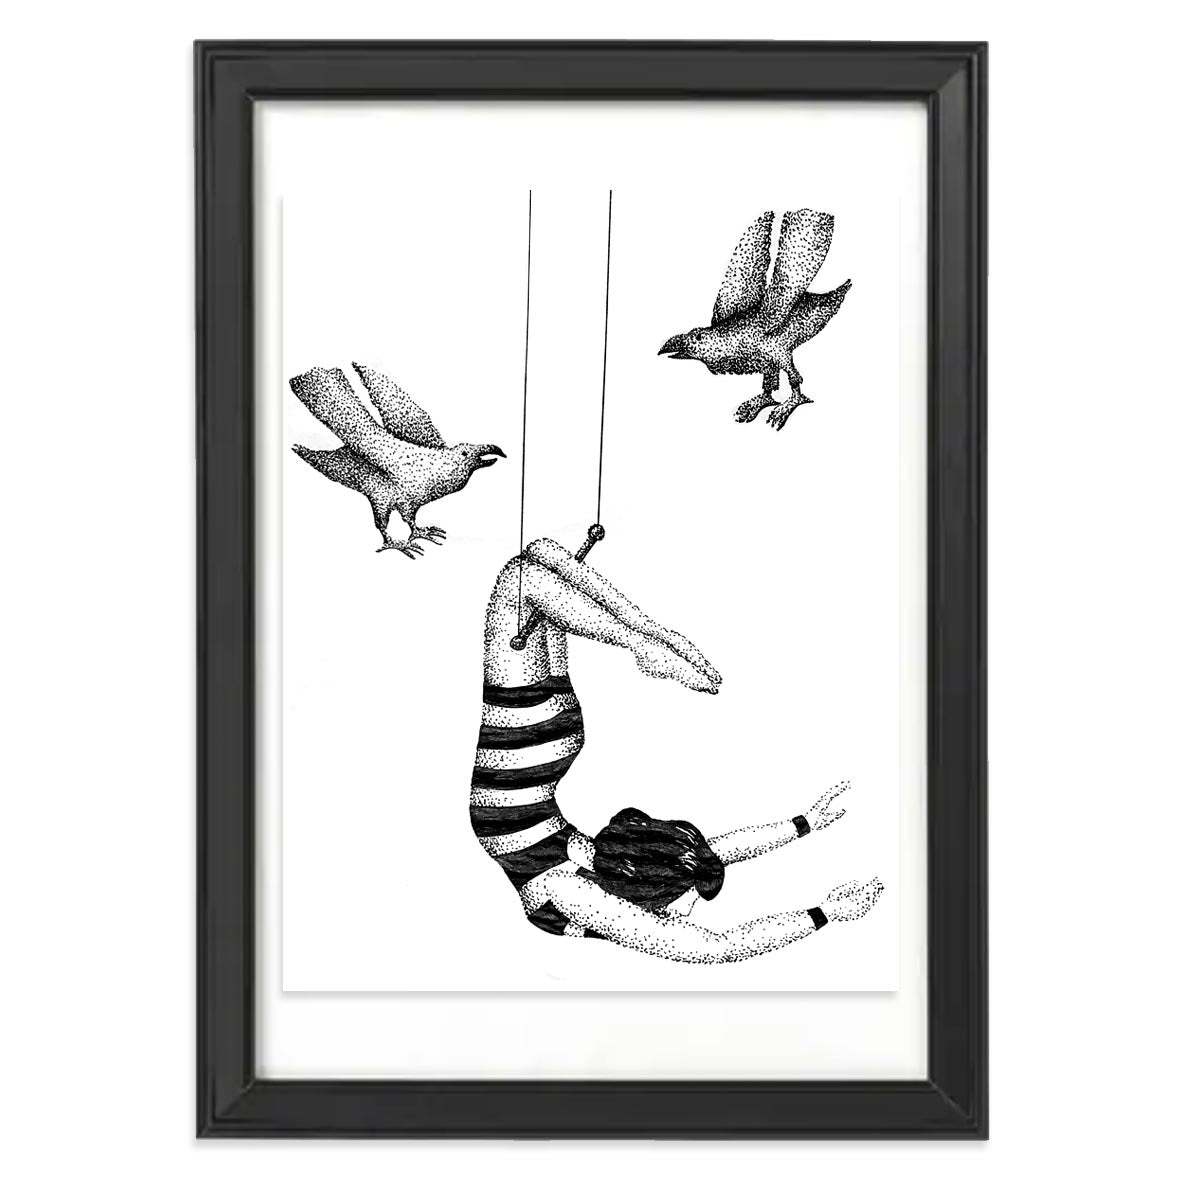 Original counting crows illustration